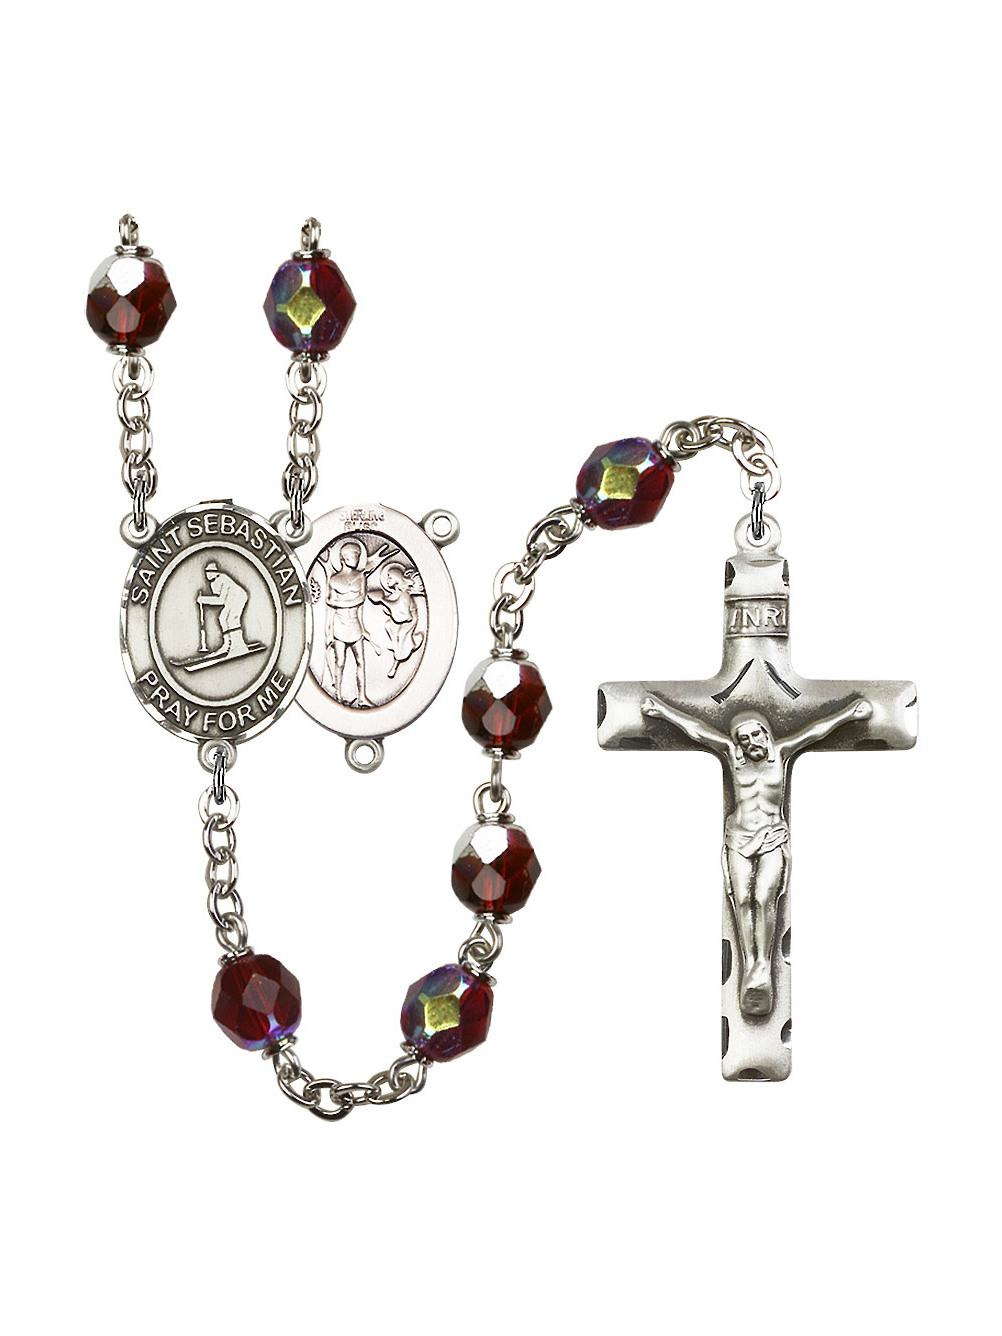 St. Sebastian Skiing Silver-Plated Rosary 7mm January Red Lock Link Aurora Borealis Beads Crucifix Size 1 3 4 x 1 medal... by